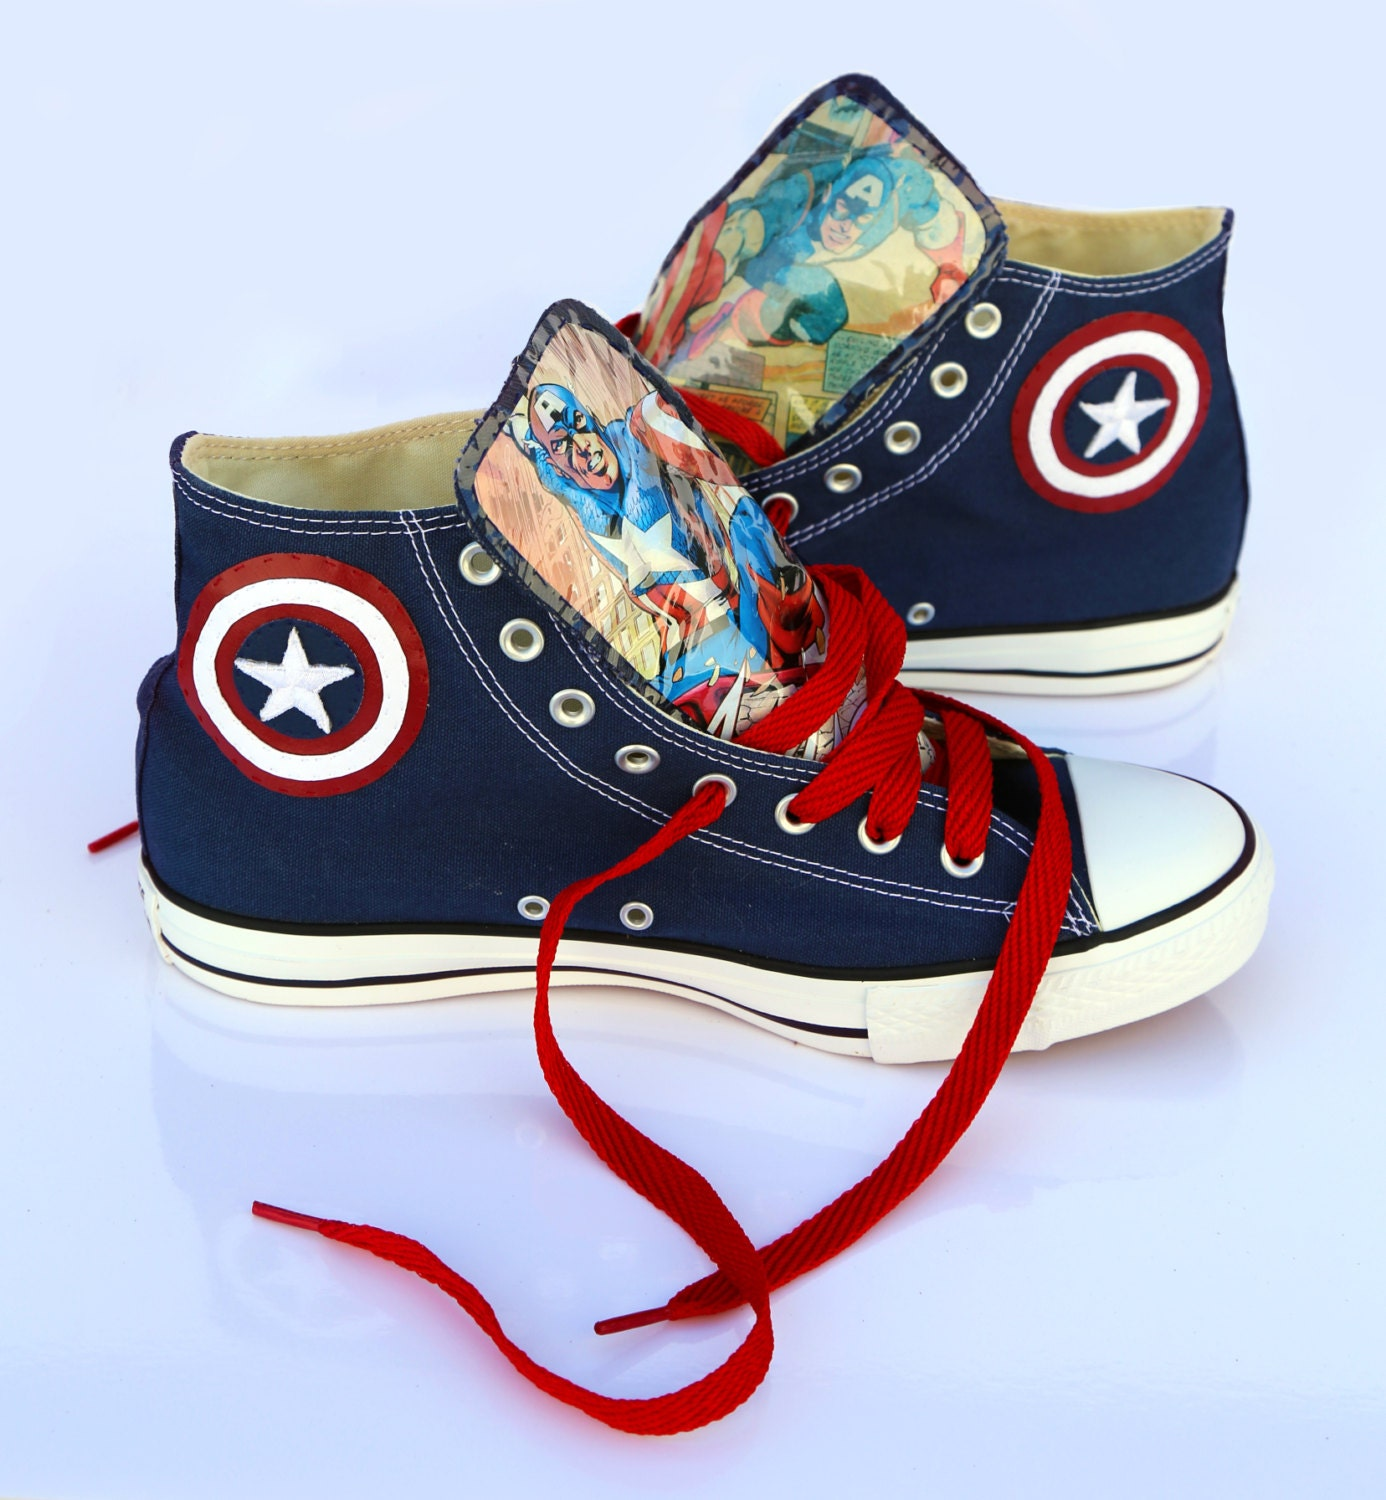 Captain America Converse shoes